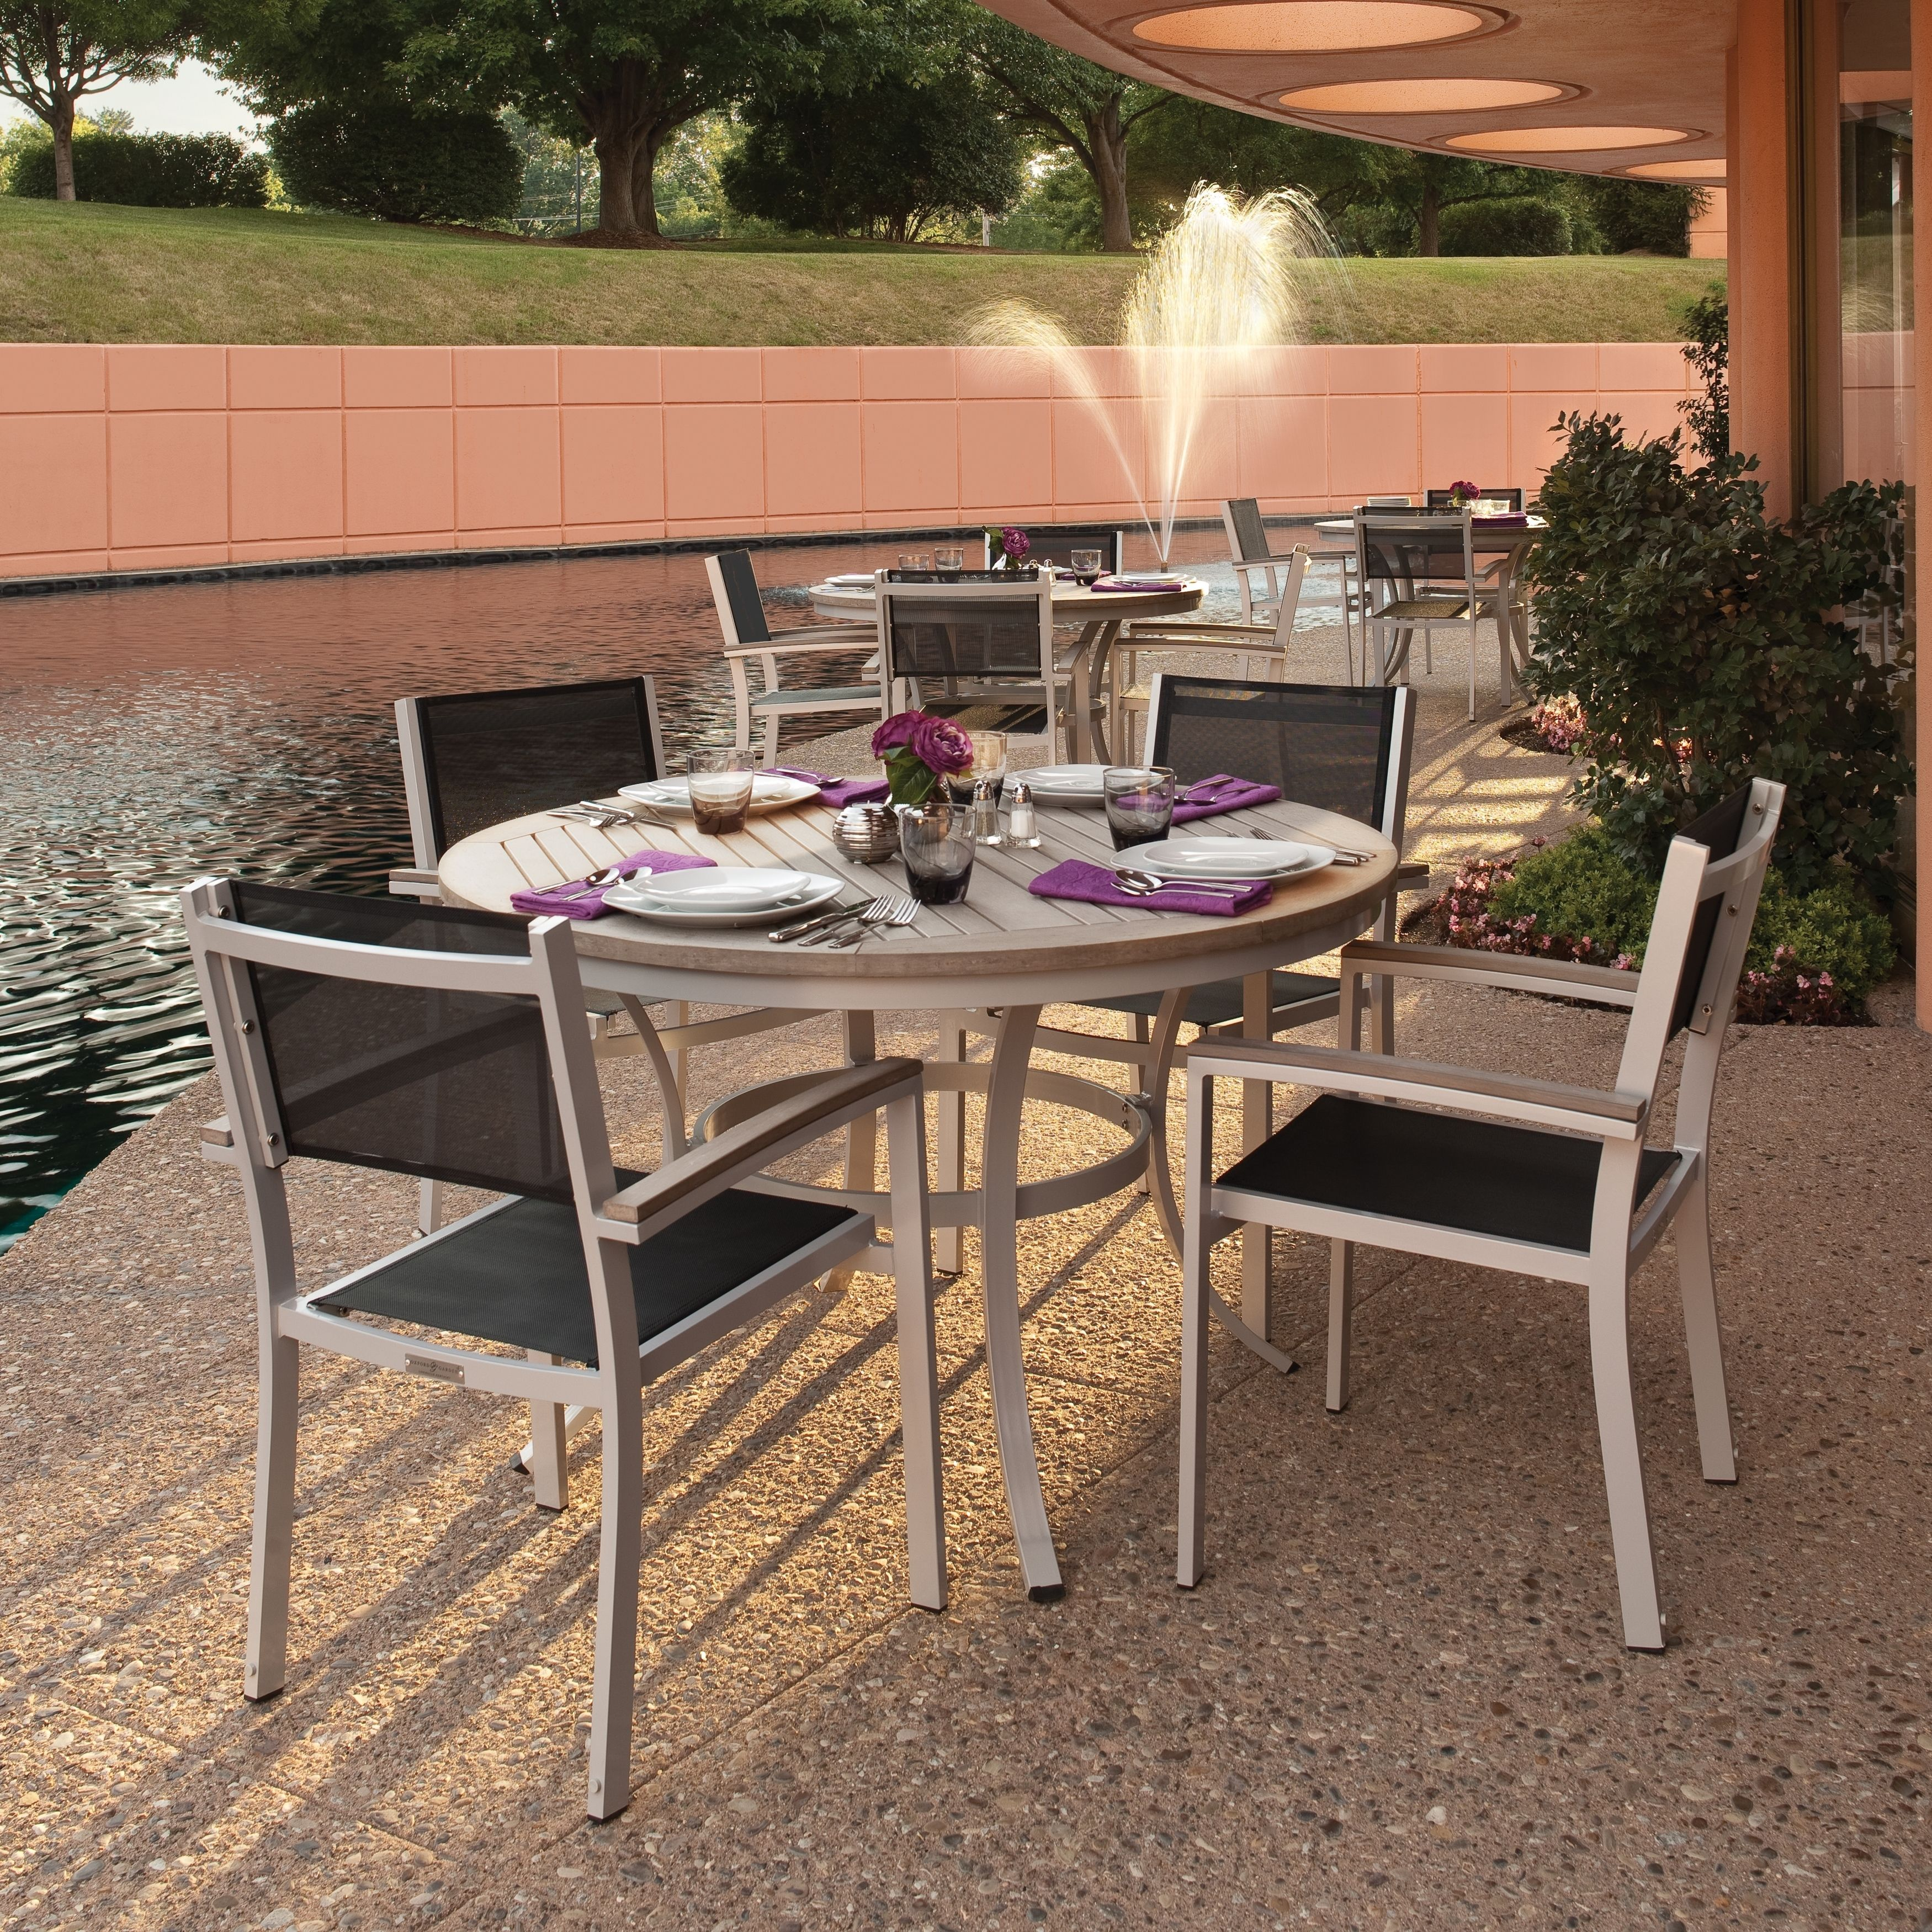 35+ Fully assembled patio dining sets Various Types